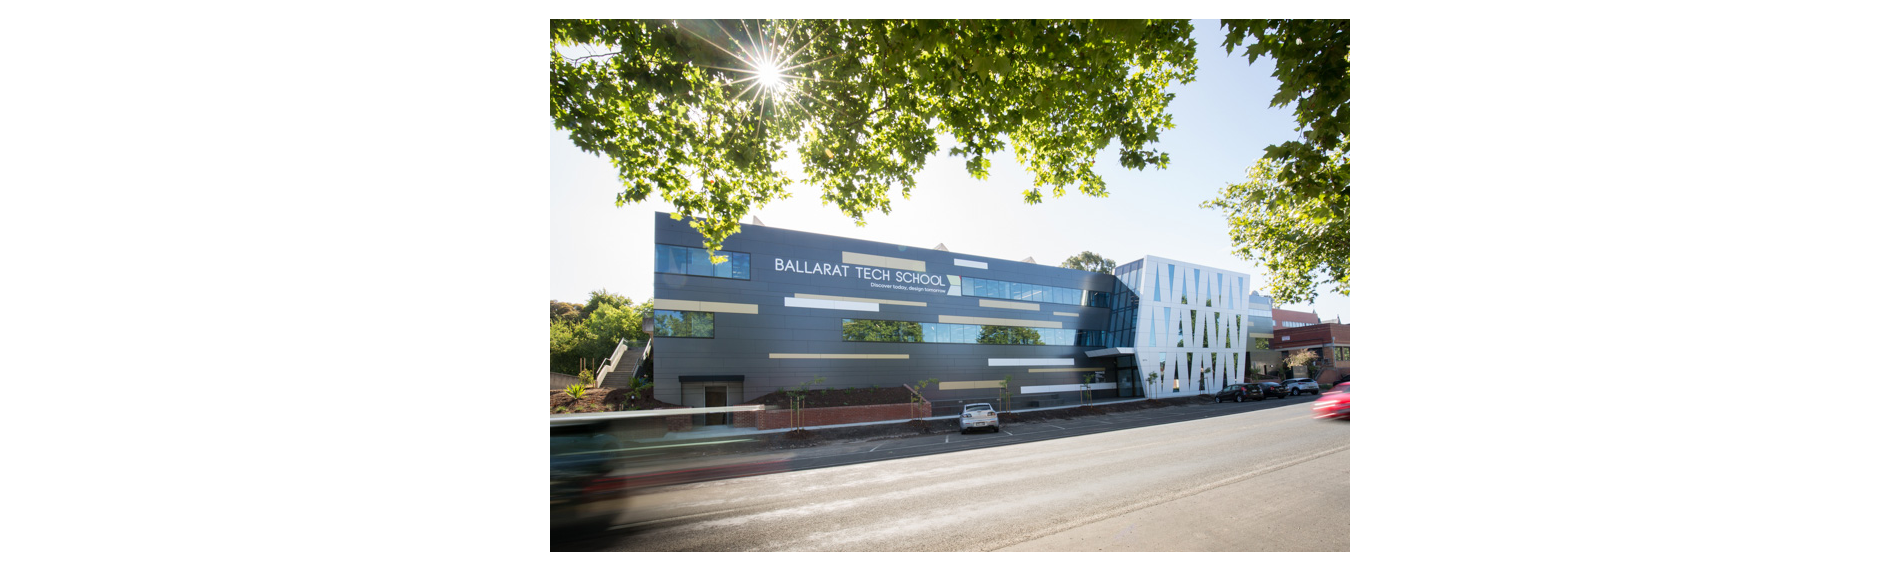 Ballarat Tech School Image 5.png